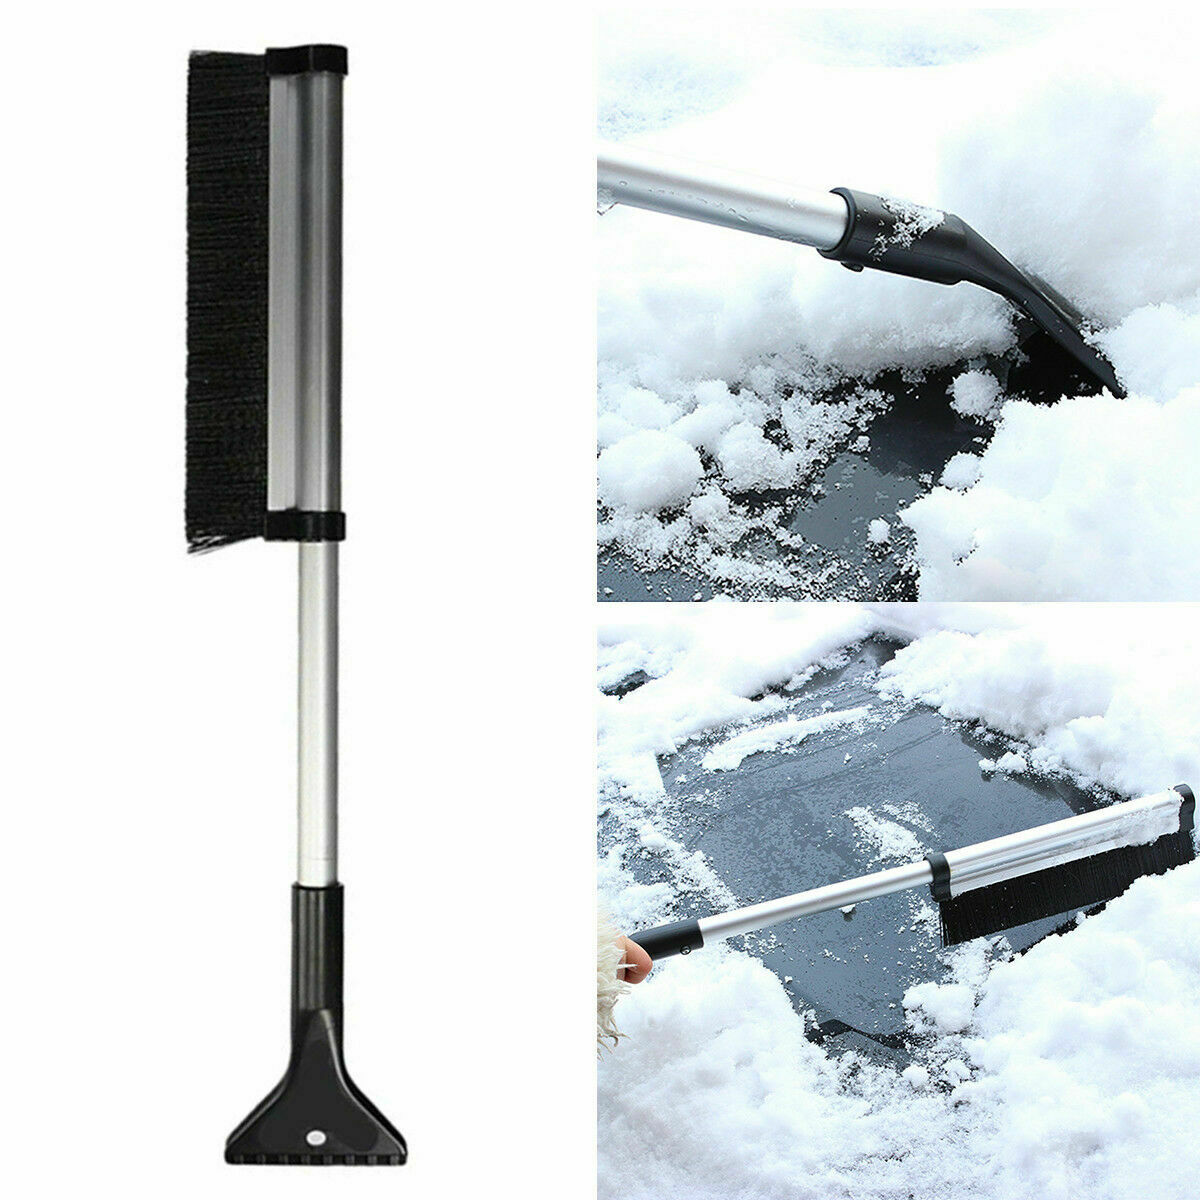 Vehicle Snow Ice Scraper Car Windshield Auto Ice Remove Clean Tool Window Cleaning Tool Winter Car Wash Accessories